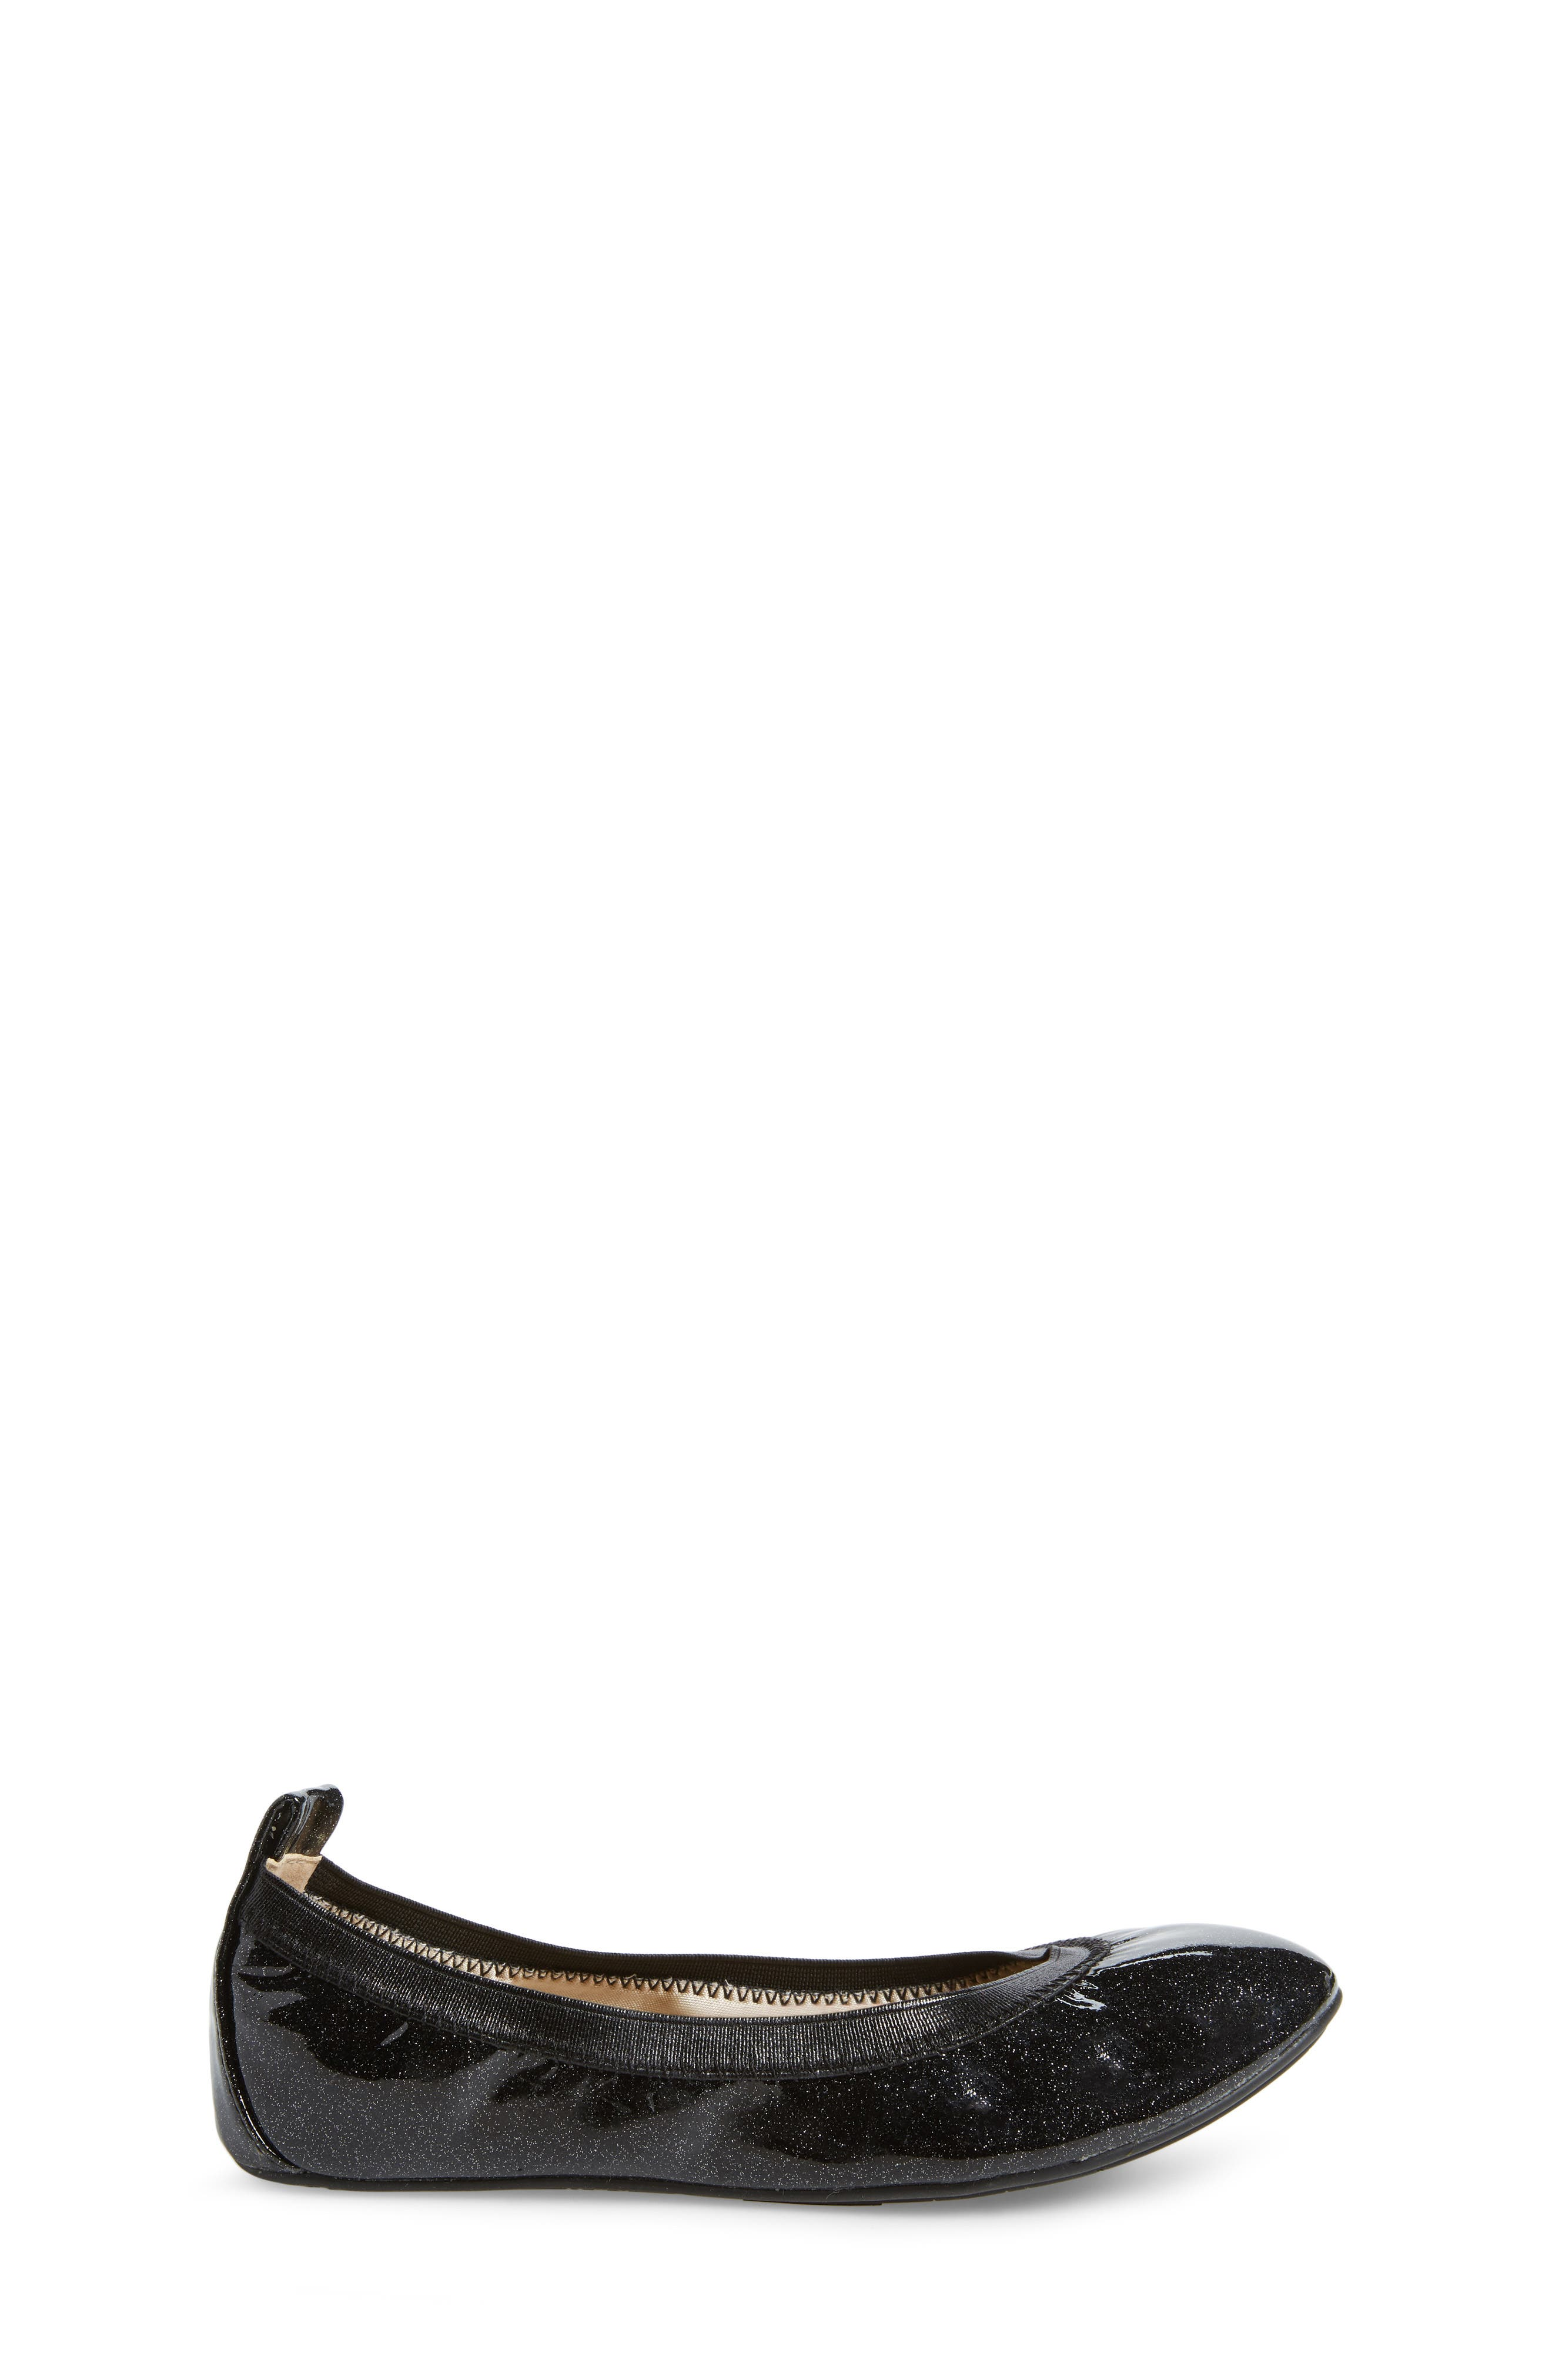 Miss Samara Ballet Flat,                             Alternate thumbnail 3, color,                             BLACK PATENT GLITTER